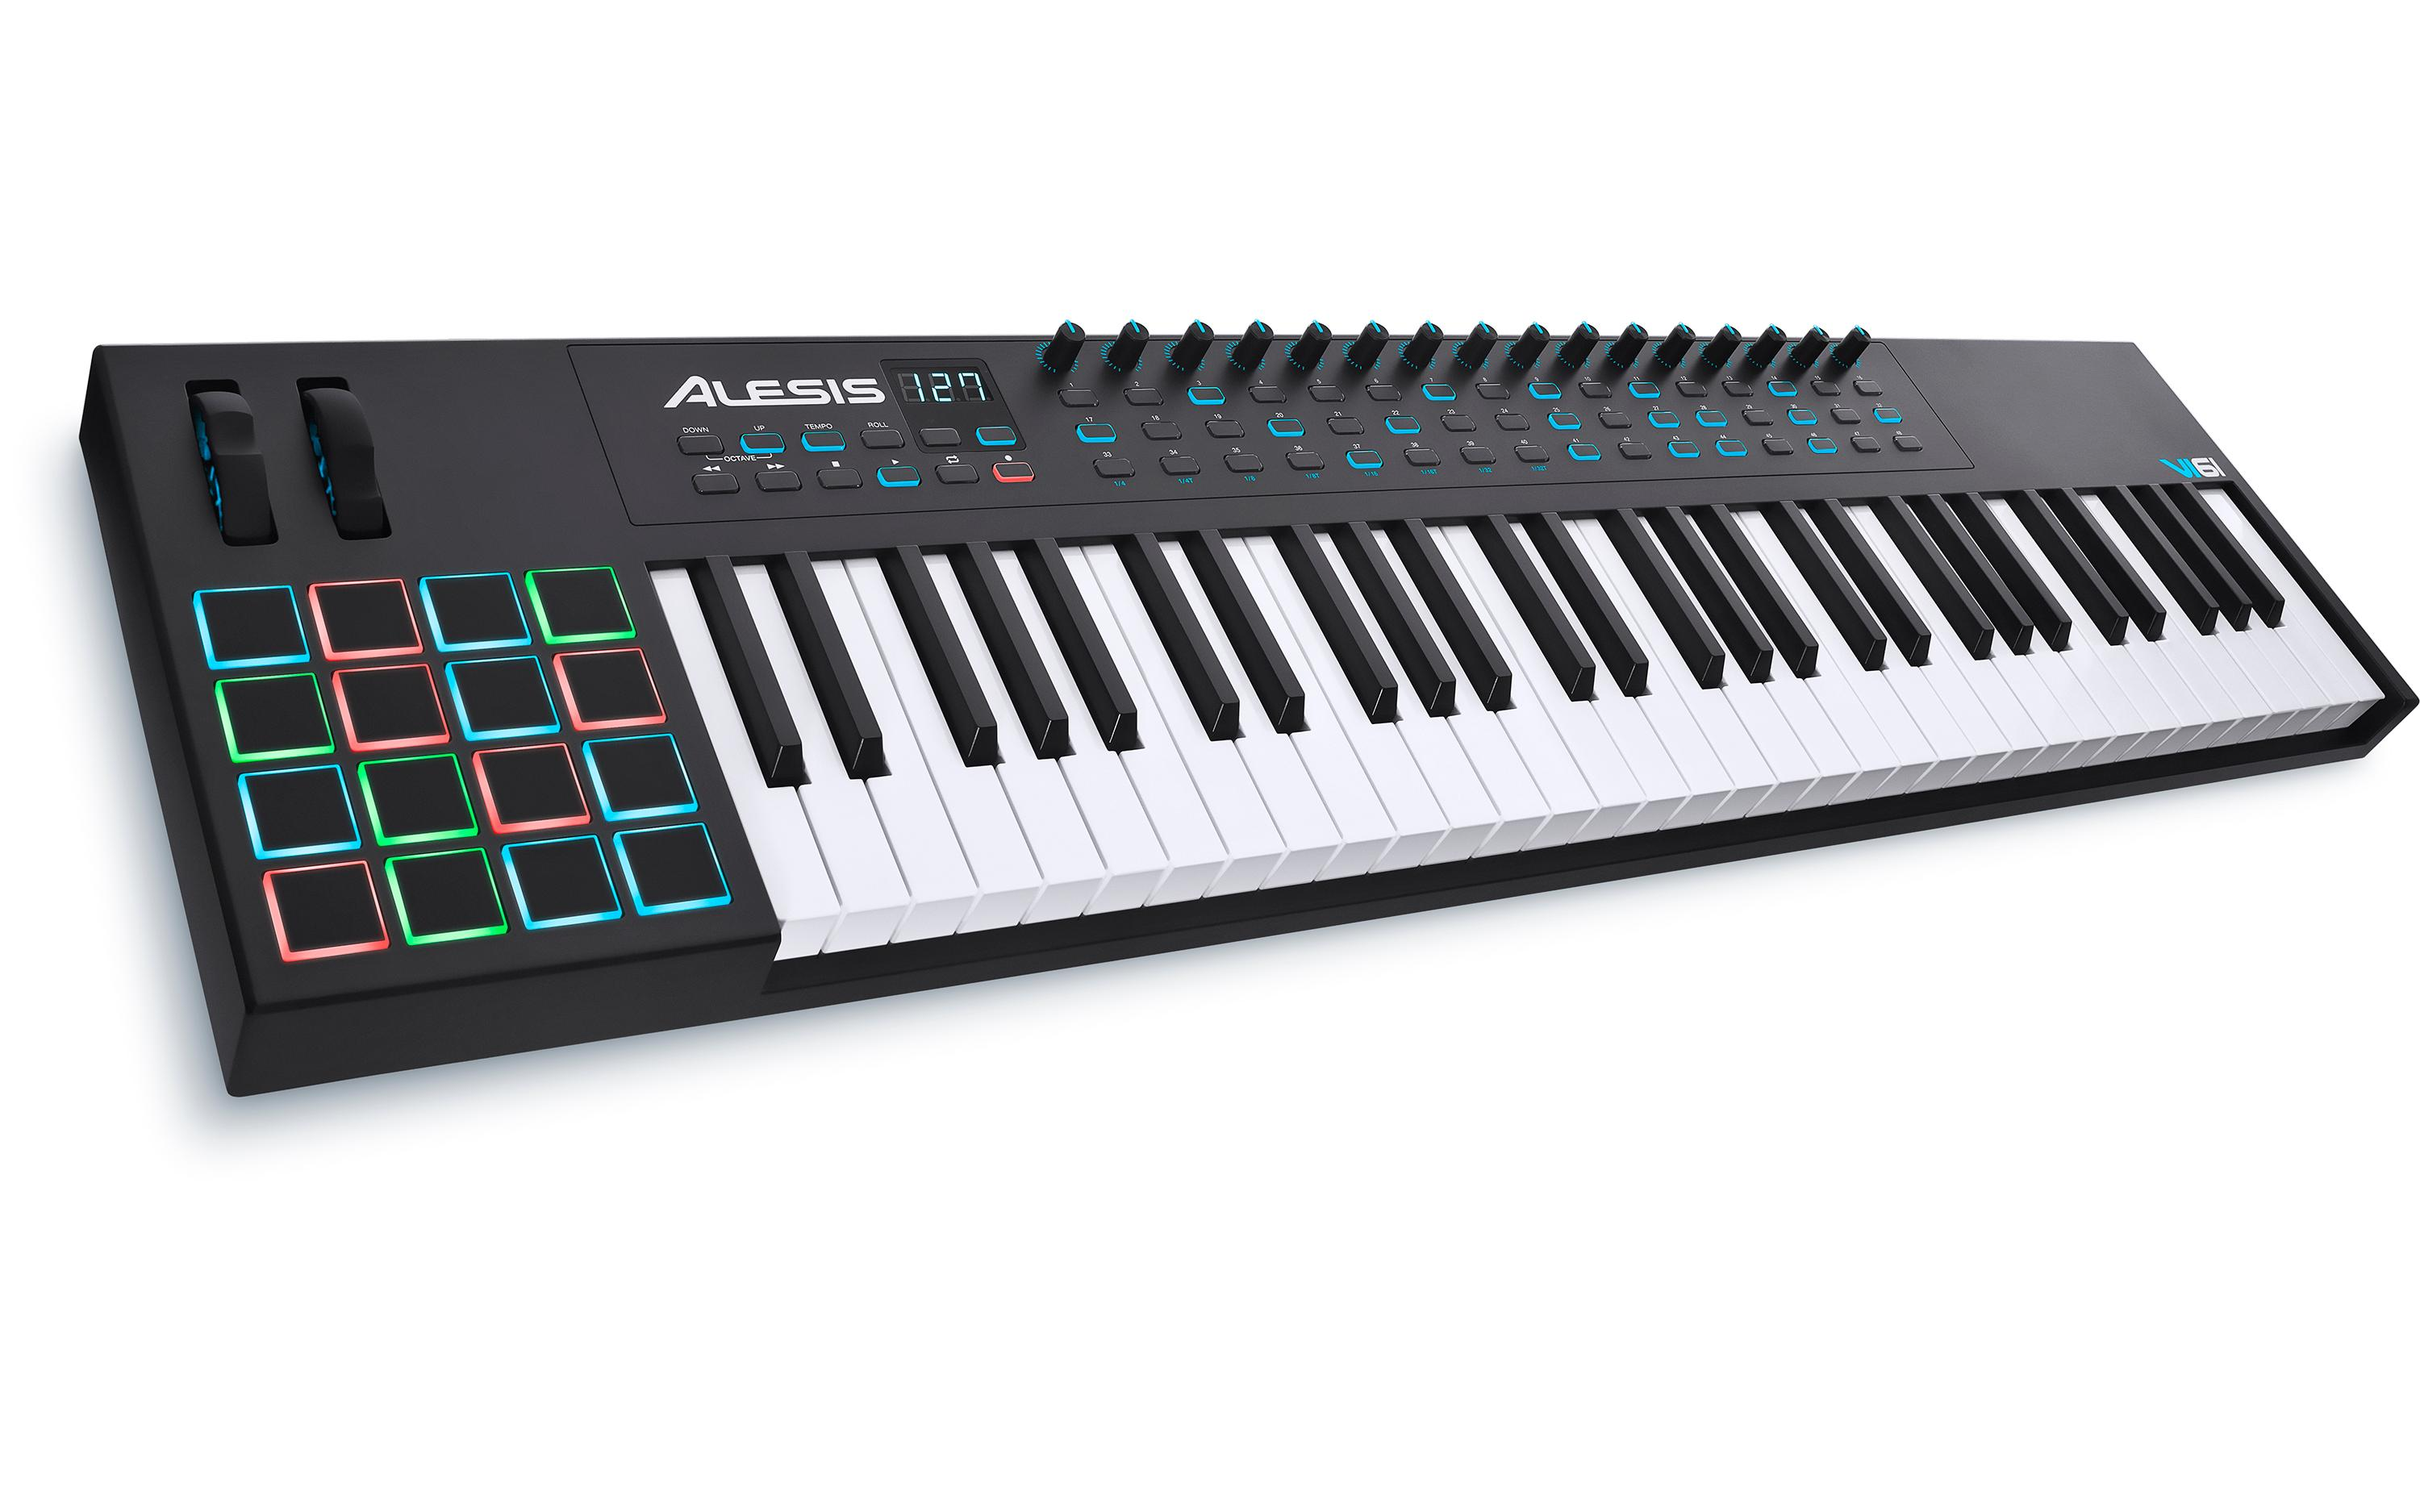 alesis vi61 advanced 61 key usb midi keyboard drum pad controller 16 pads 16. Black Bedroom Furniture Sets. Home Design Ideas